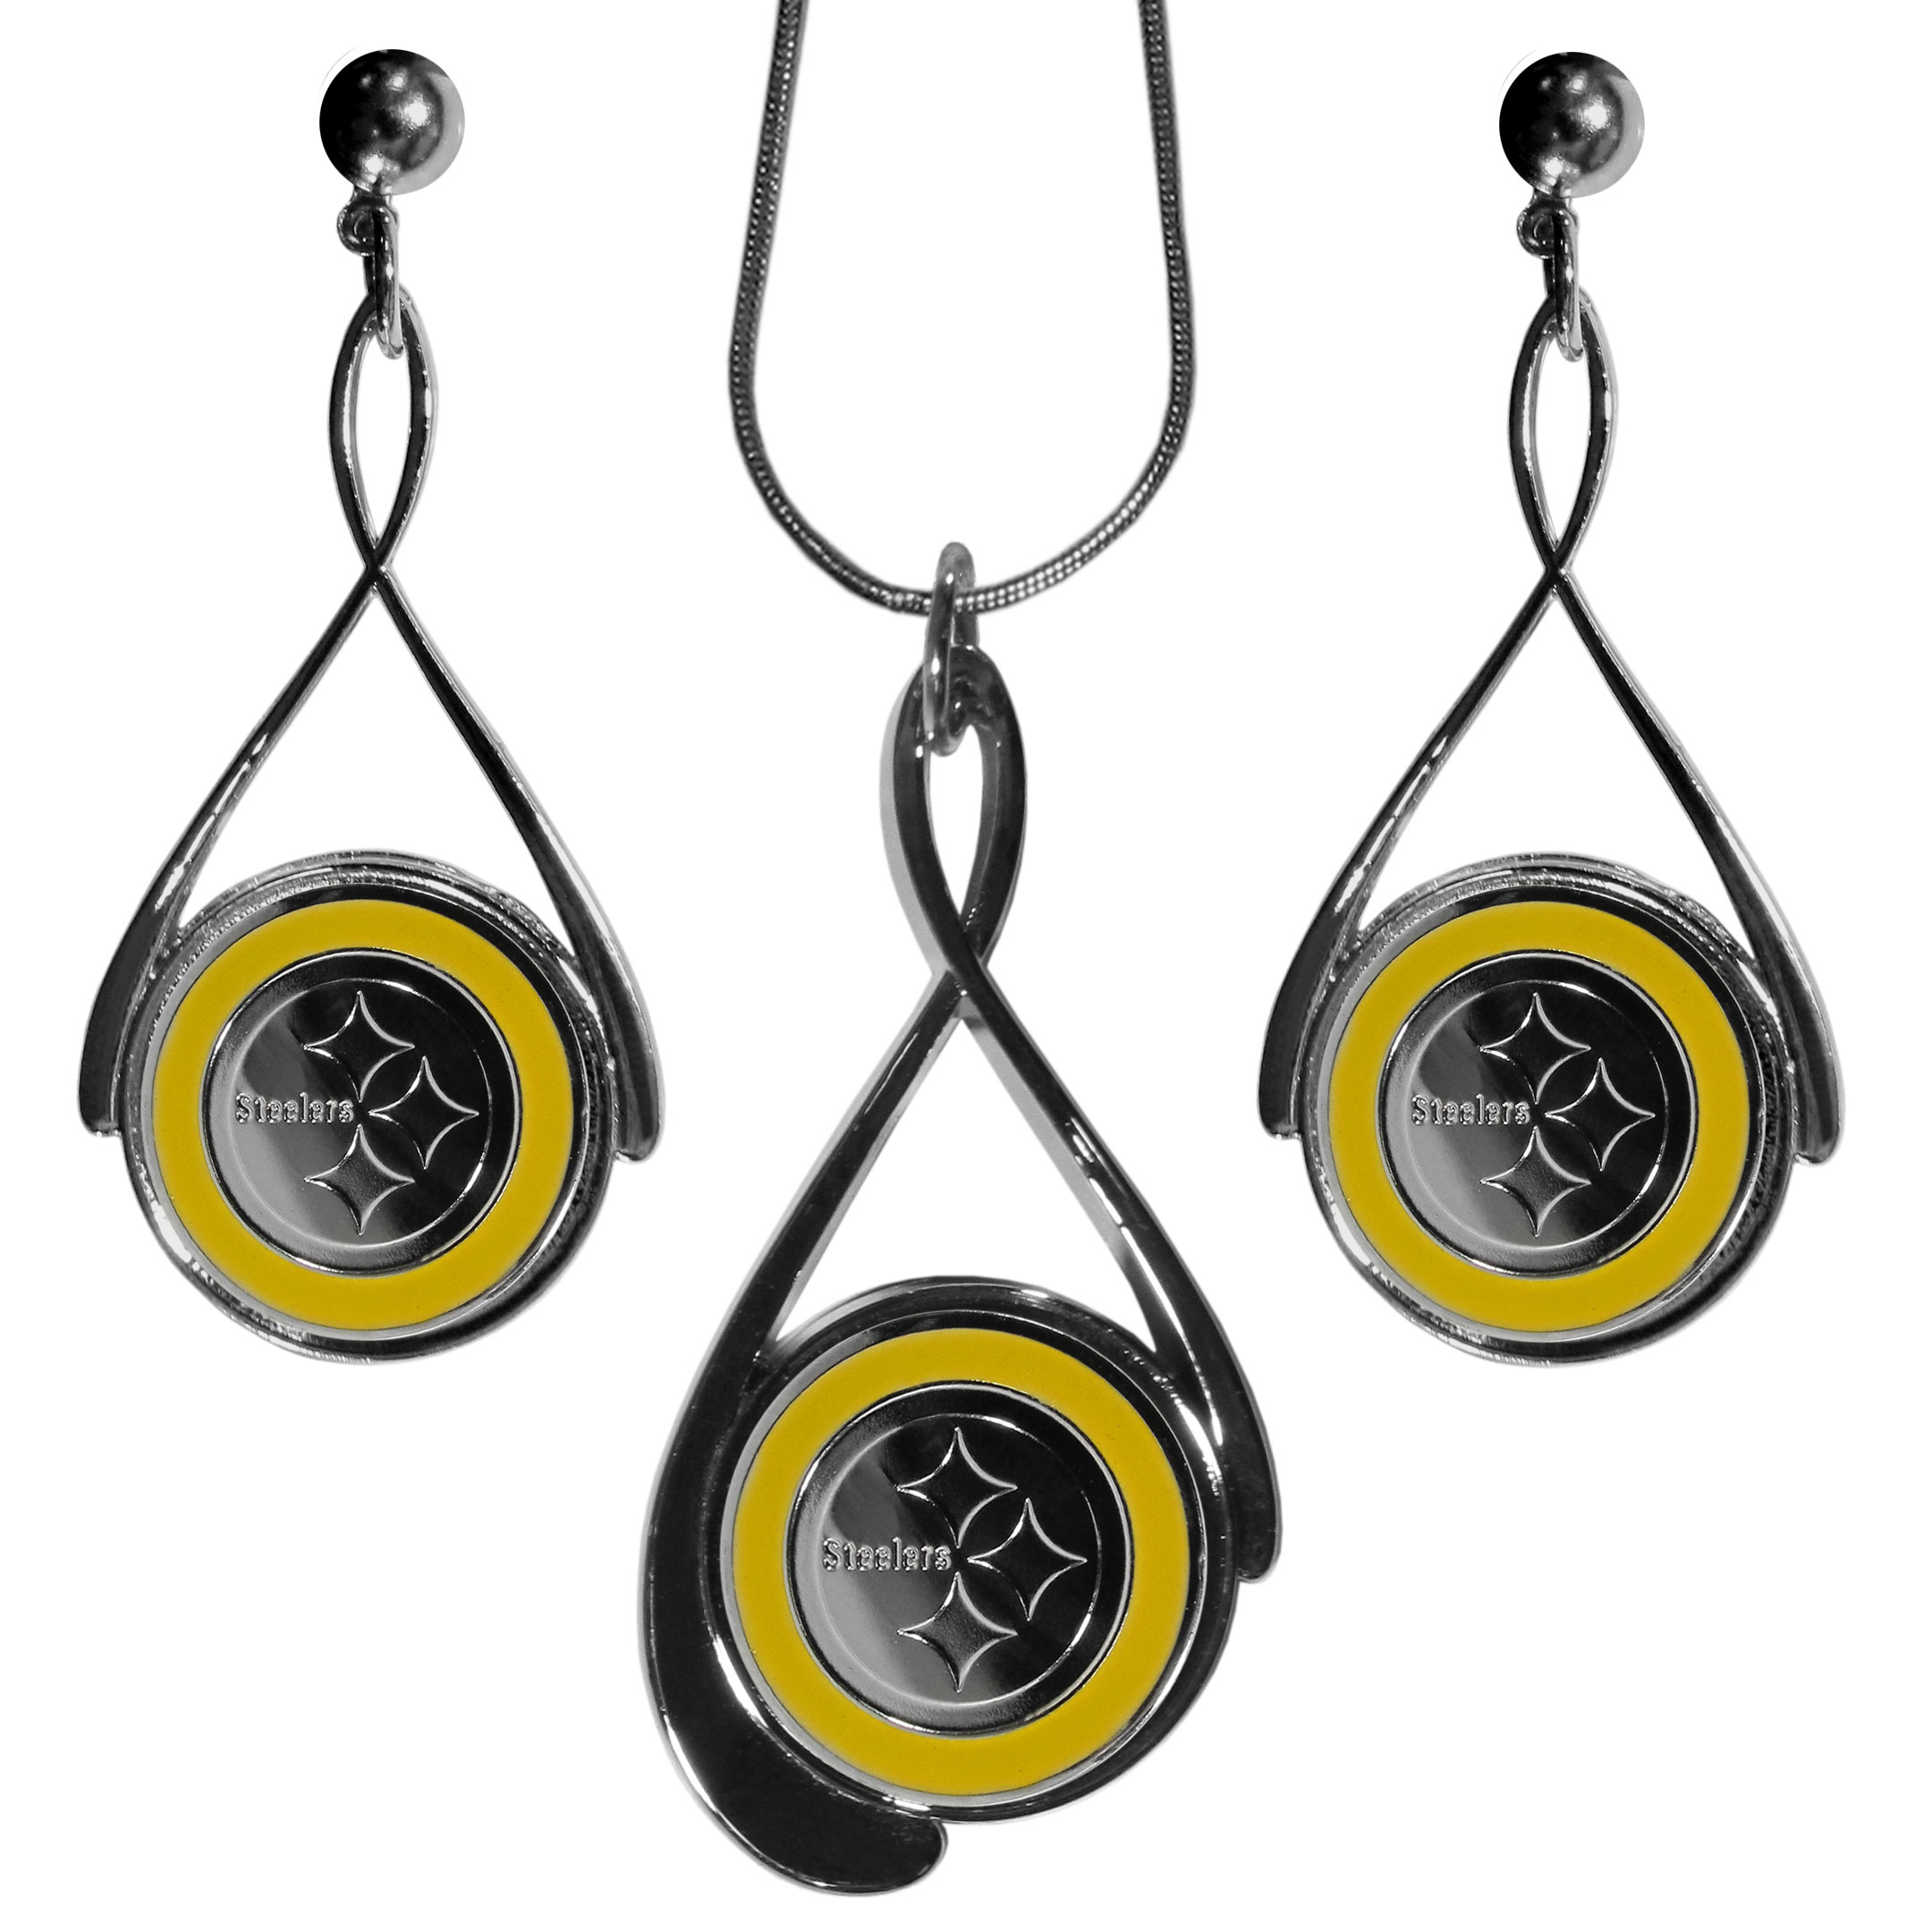 Pittsburgh Steelers Tear Drop Jewelry Set - Our Pittsburgh Steelers tear drop earrings and necklace set is a sporty twist on the classic tear drop style. The high polish dangle earrings feature the team logo in raised metal against the primary team color inset into the 2 inch tear drop setting paired with a beautiful matching necklace with a 18 inch snake chain with 2 inch extendor. The earrings have hypoallergenic stud posts.